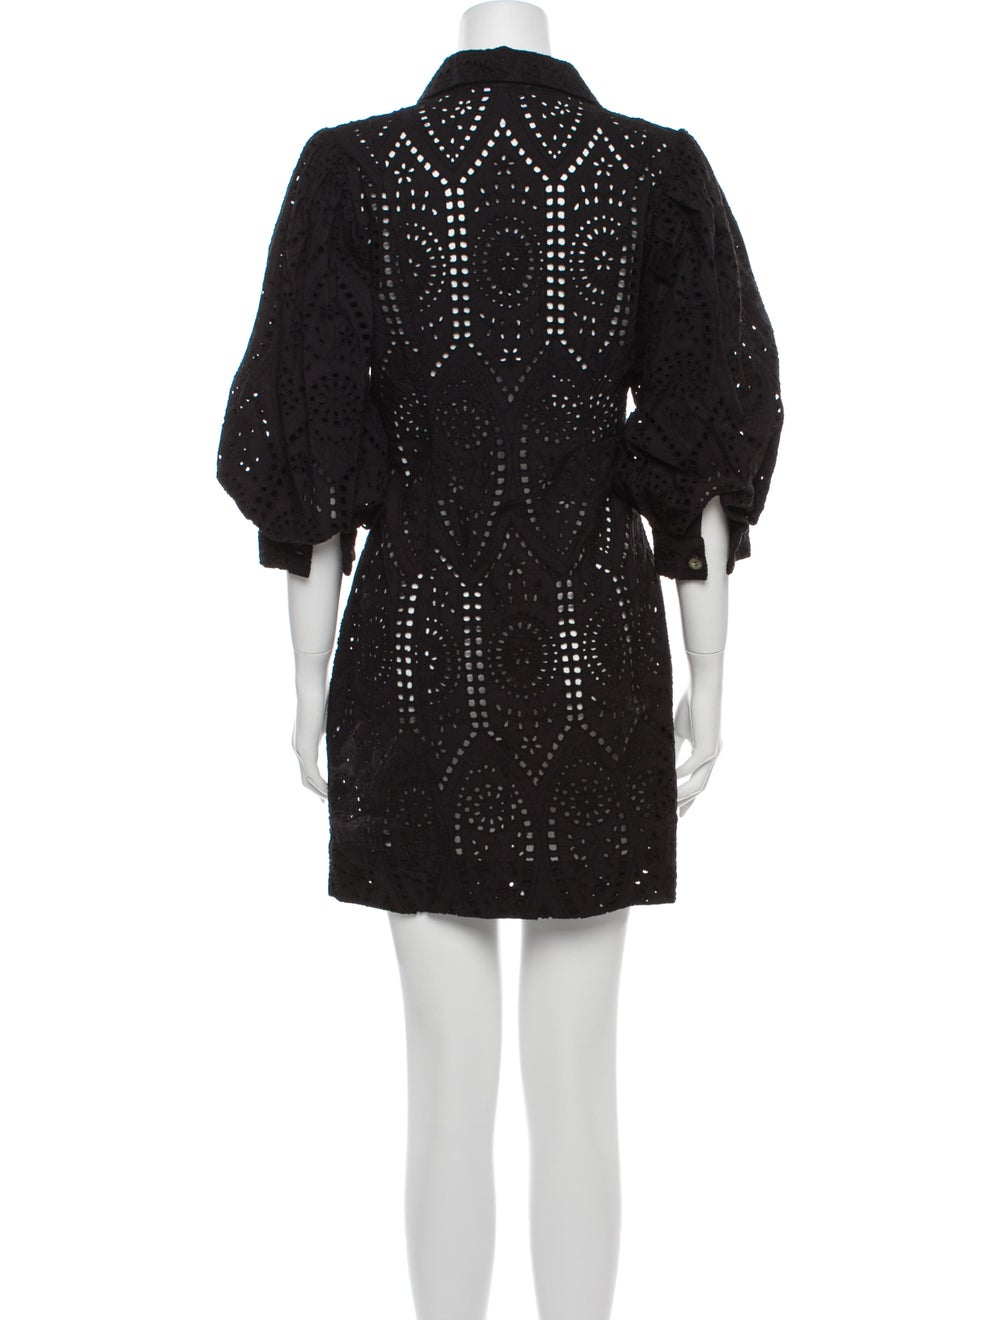 Ganni Lace Pattern Mini Dress Black - image 3